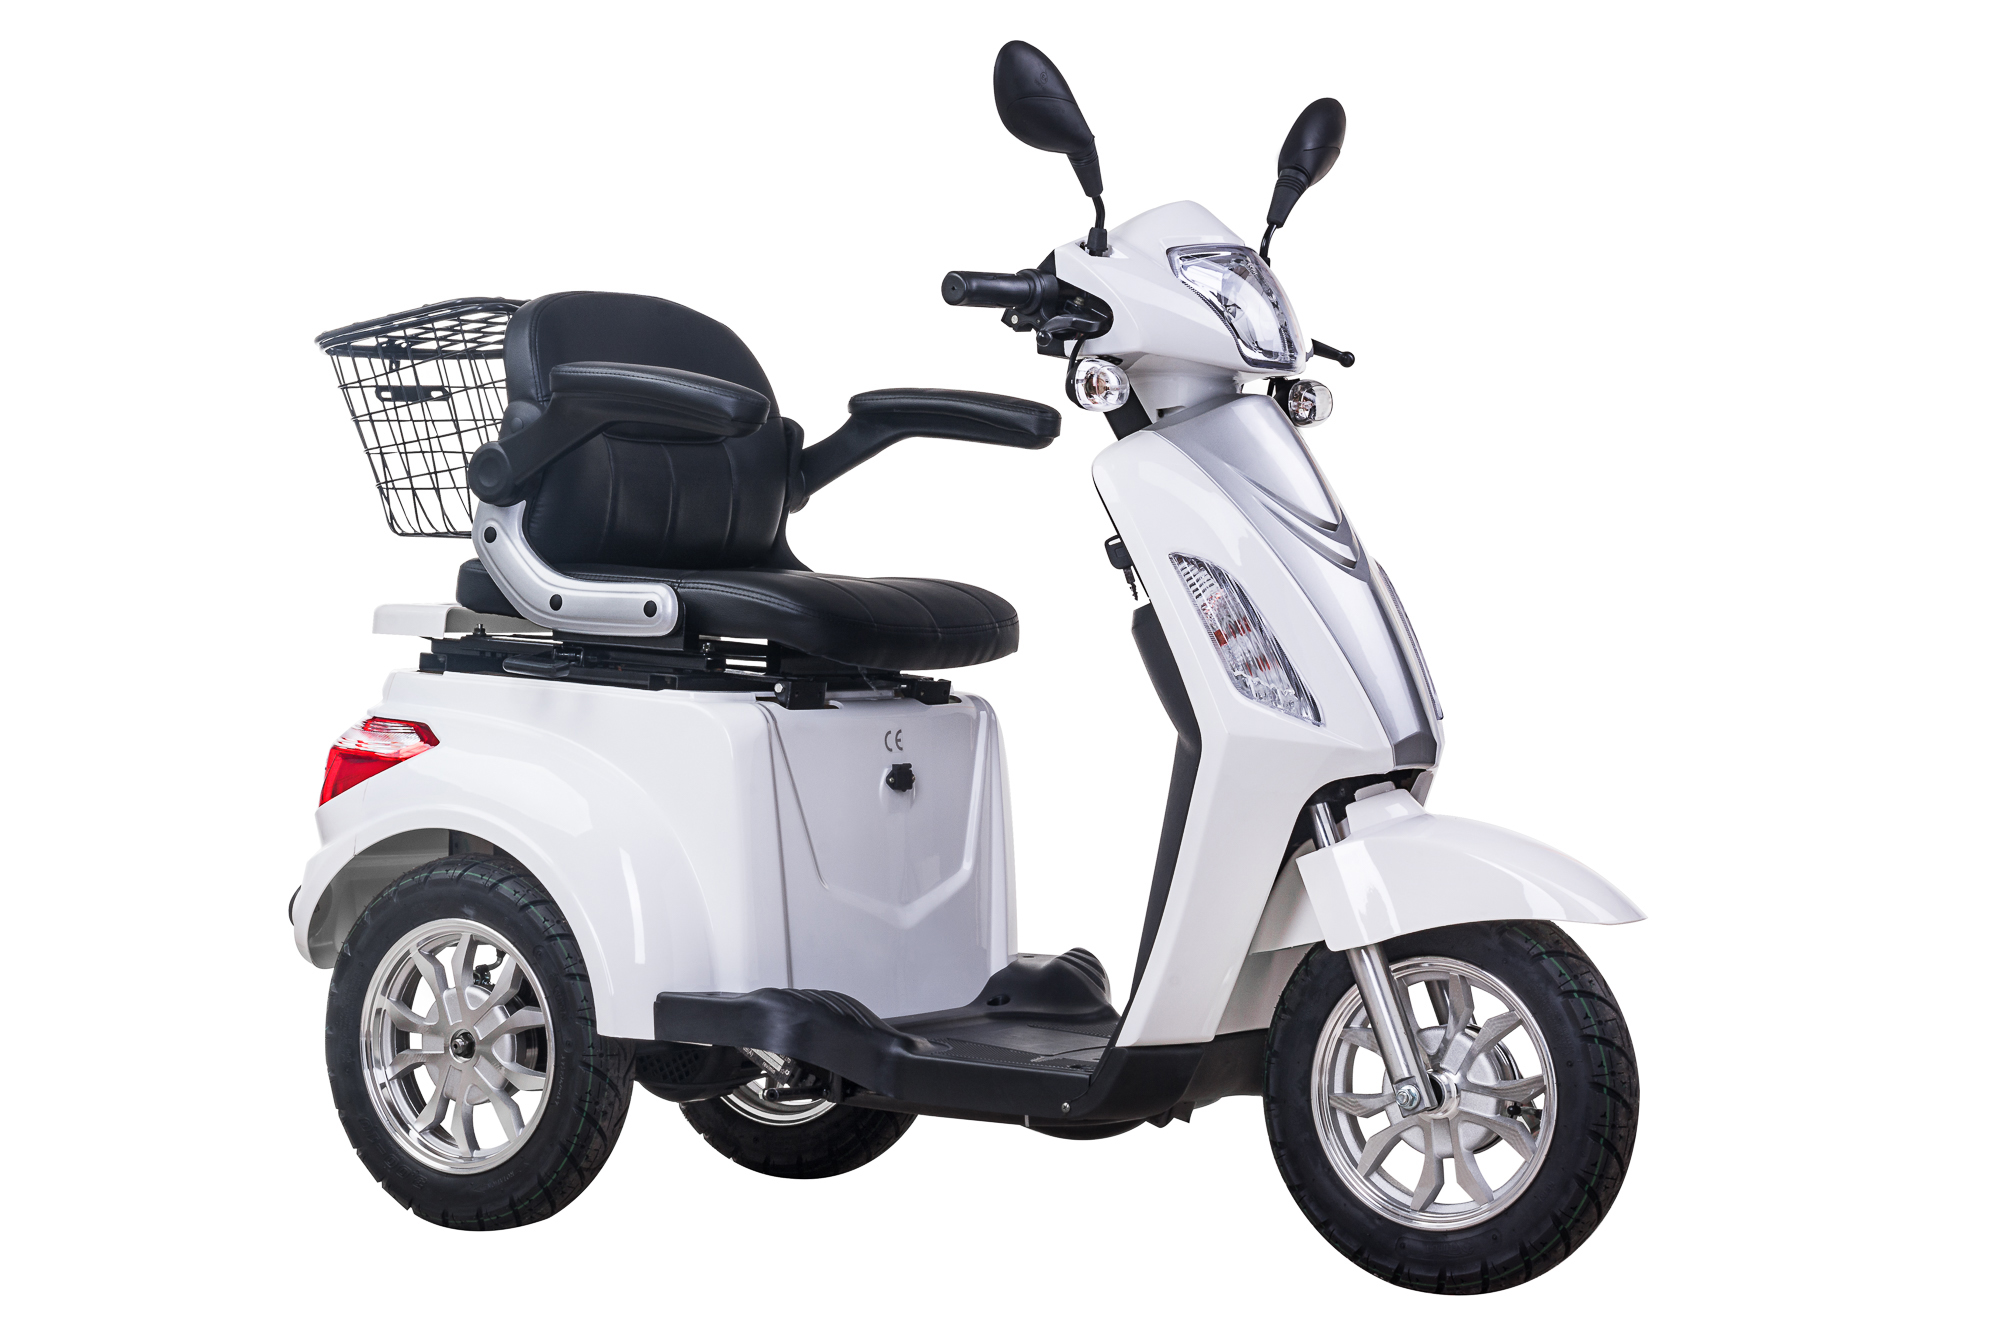 dreiradscooter e3 20 km h ohne f hrerschein elektro scooter. Black Bedroom Furniture Sets. Home Design Ideas